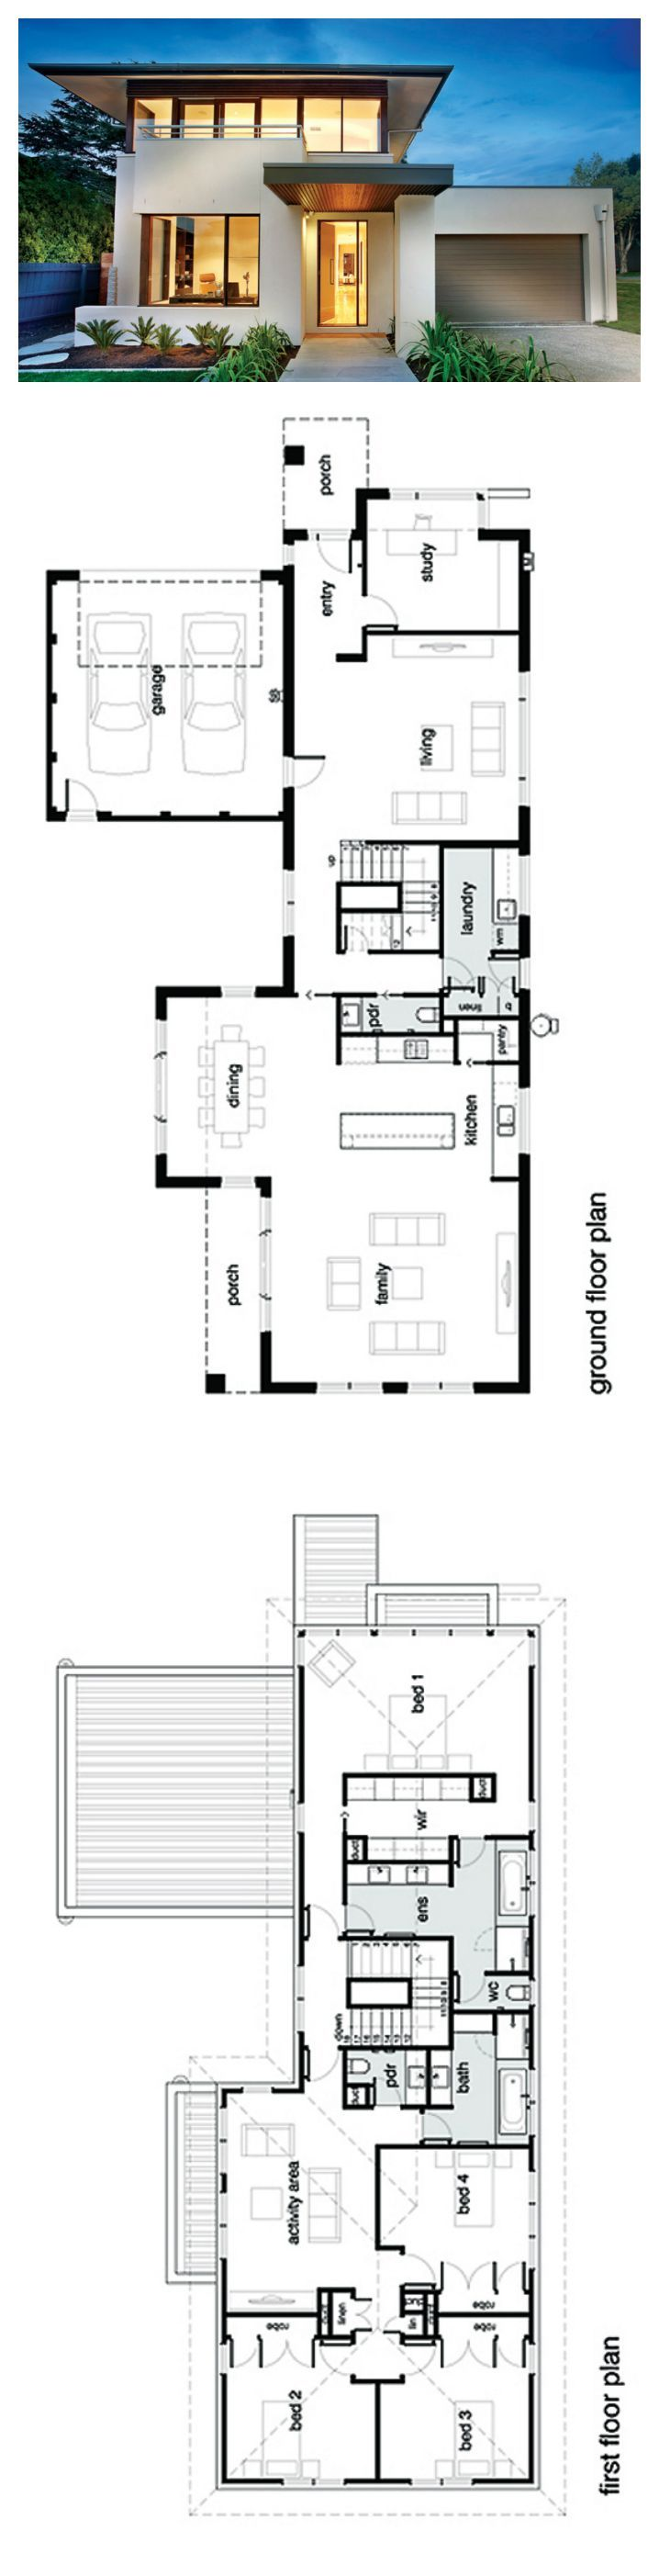 Best 25 modern house plans ideas on pinterest modern for Modern floor plans for new homes